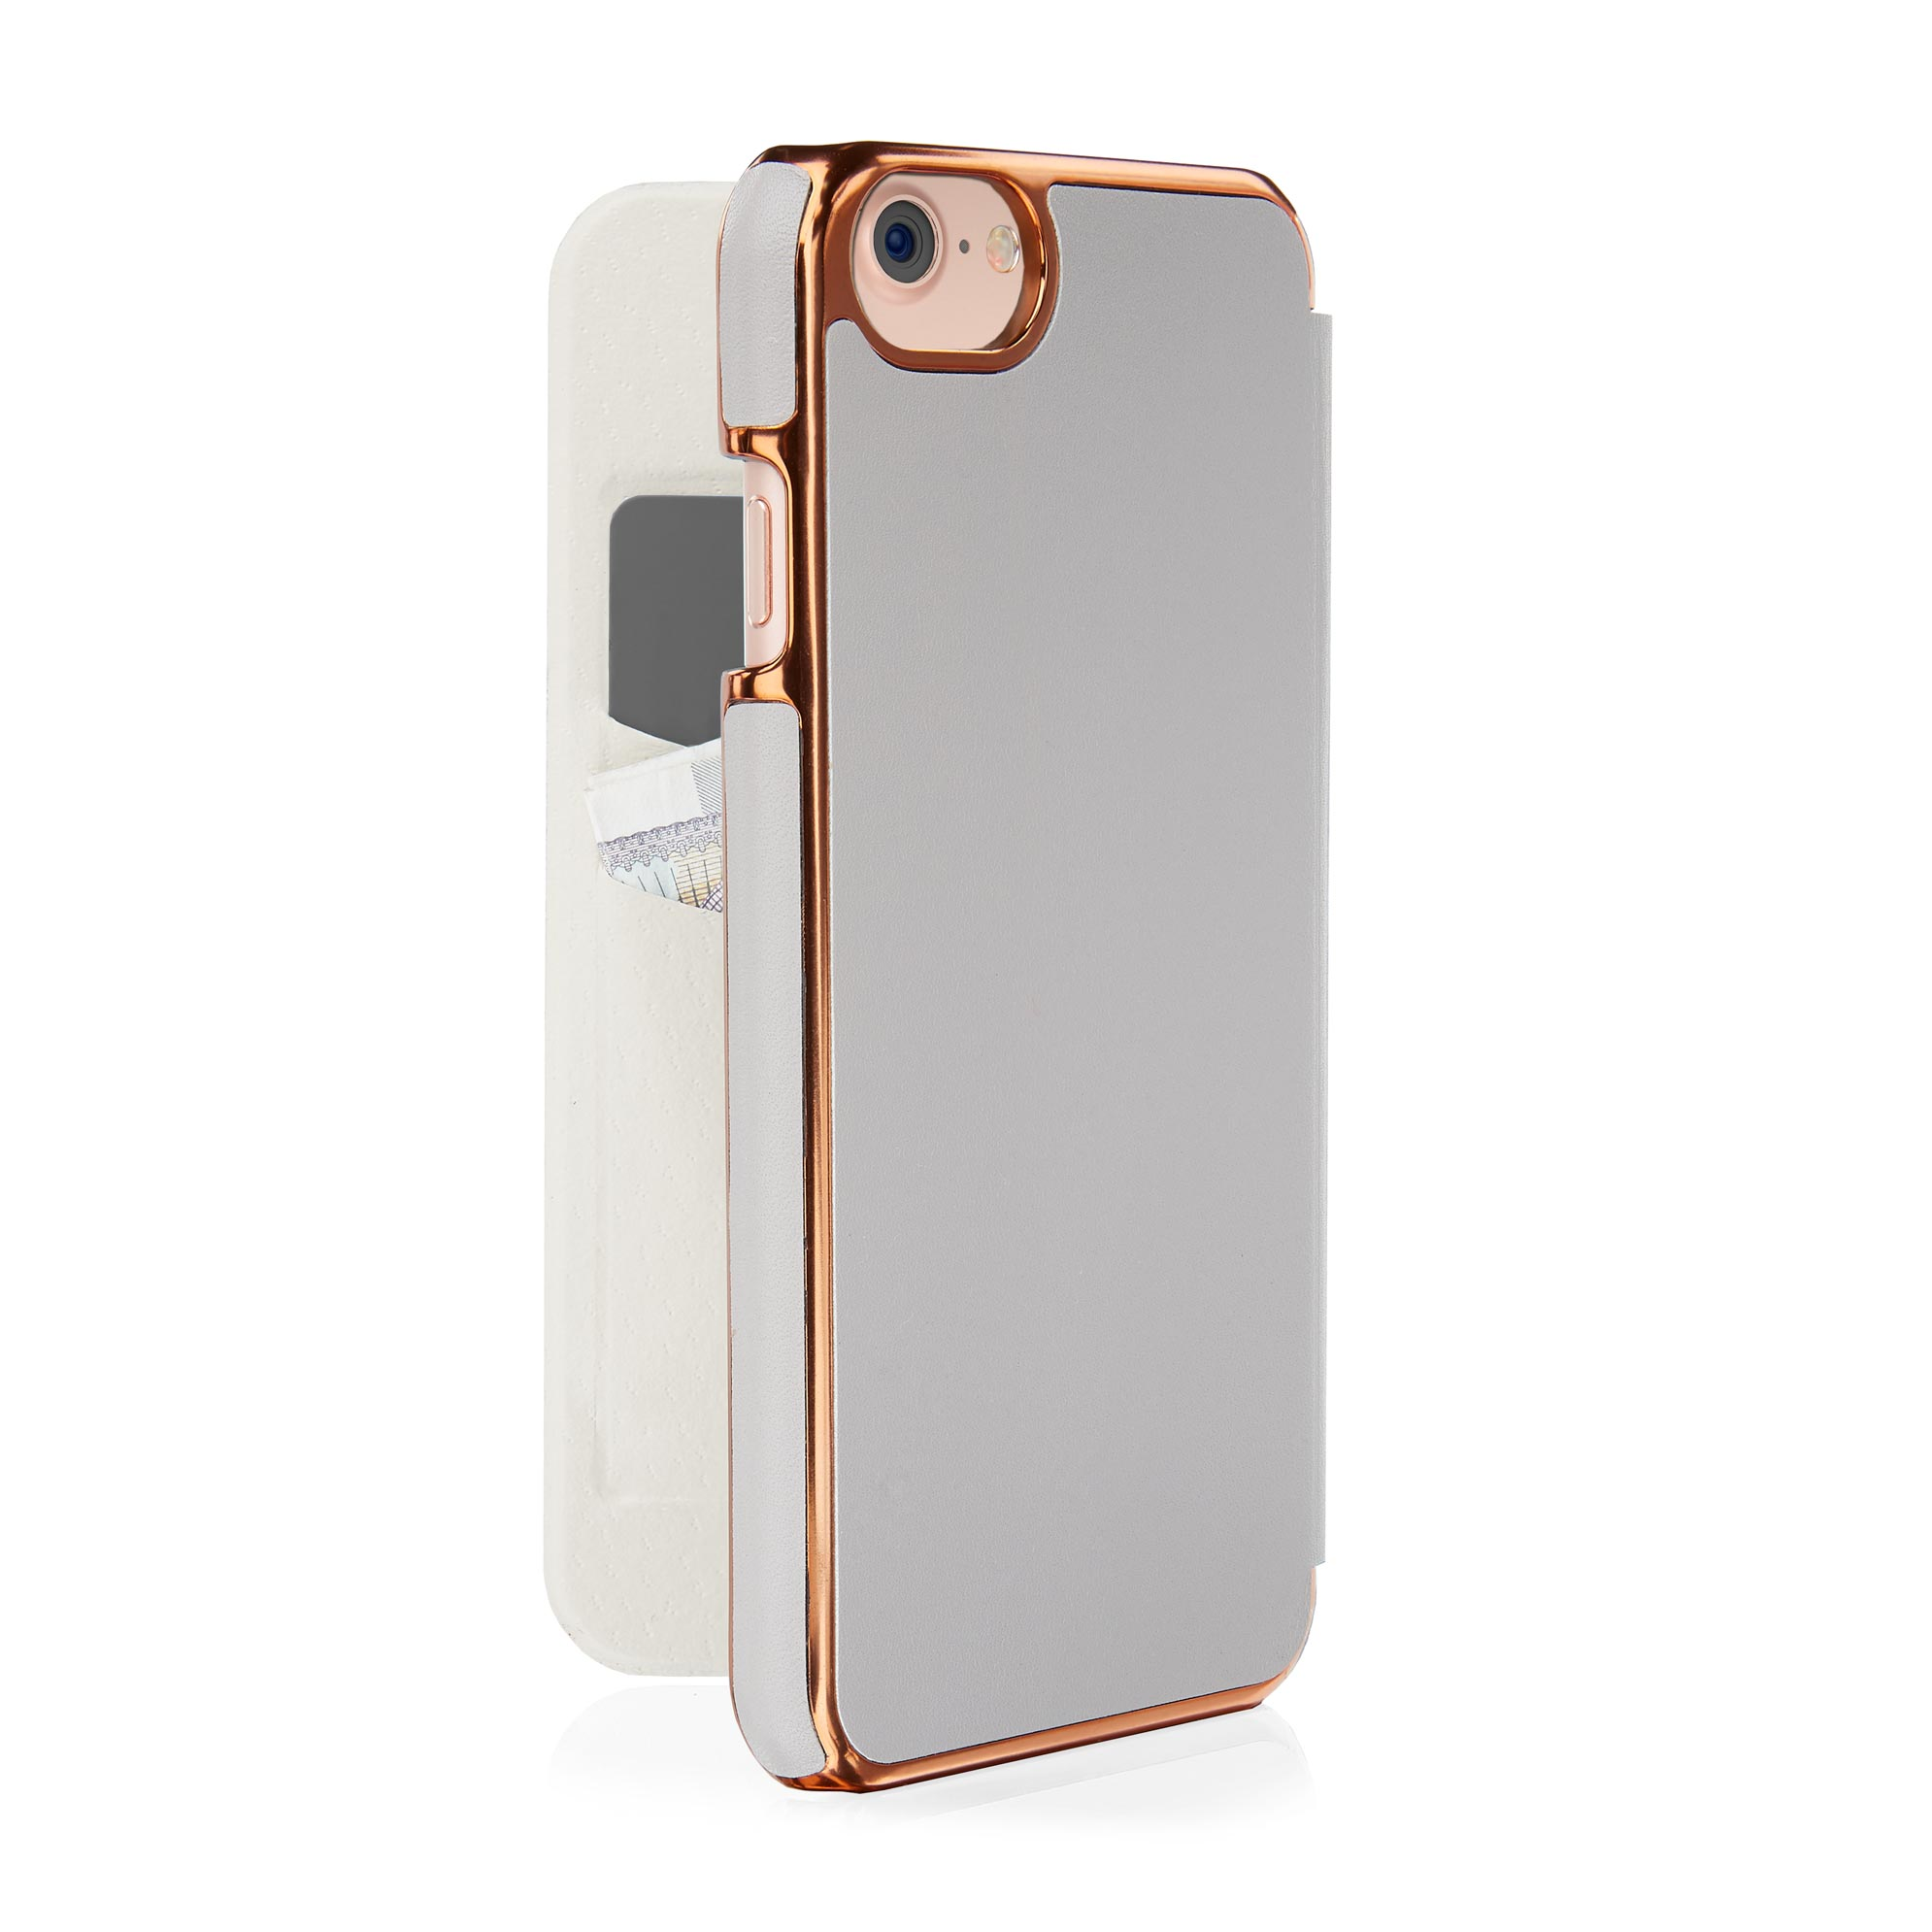 Transparent Airpods for Apple iPhoneXs Max Case Shockproof